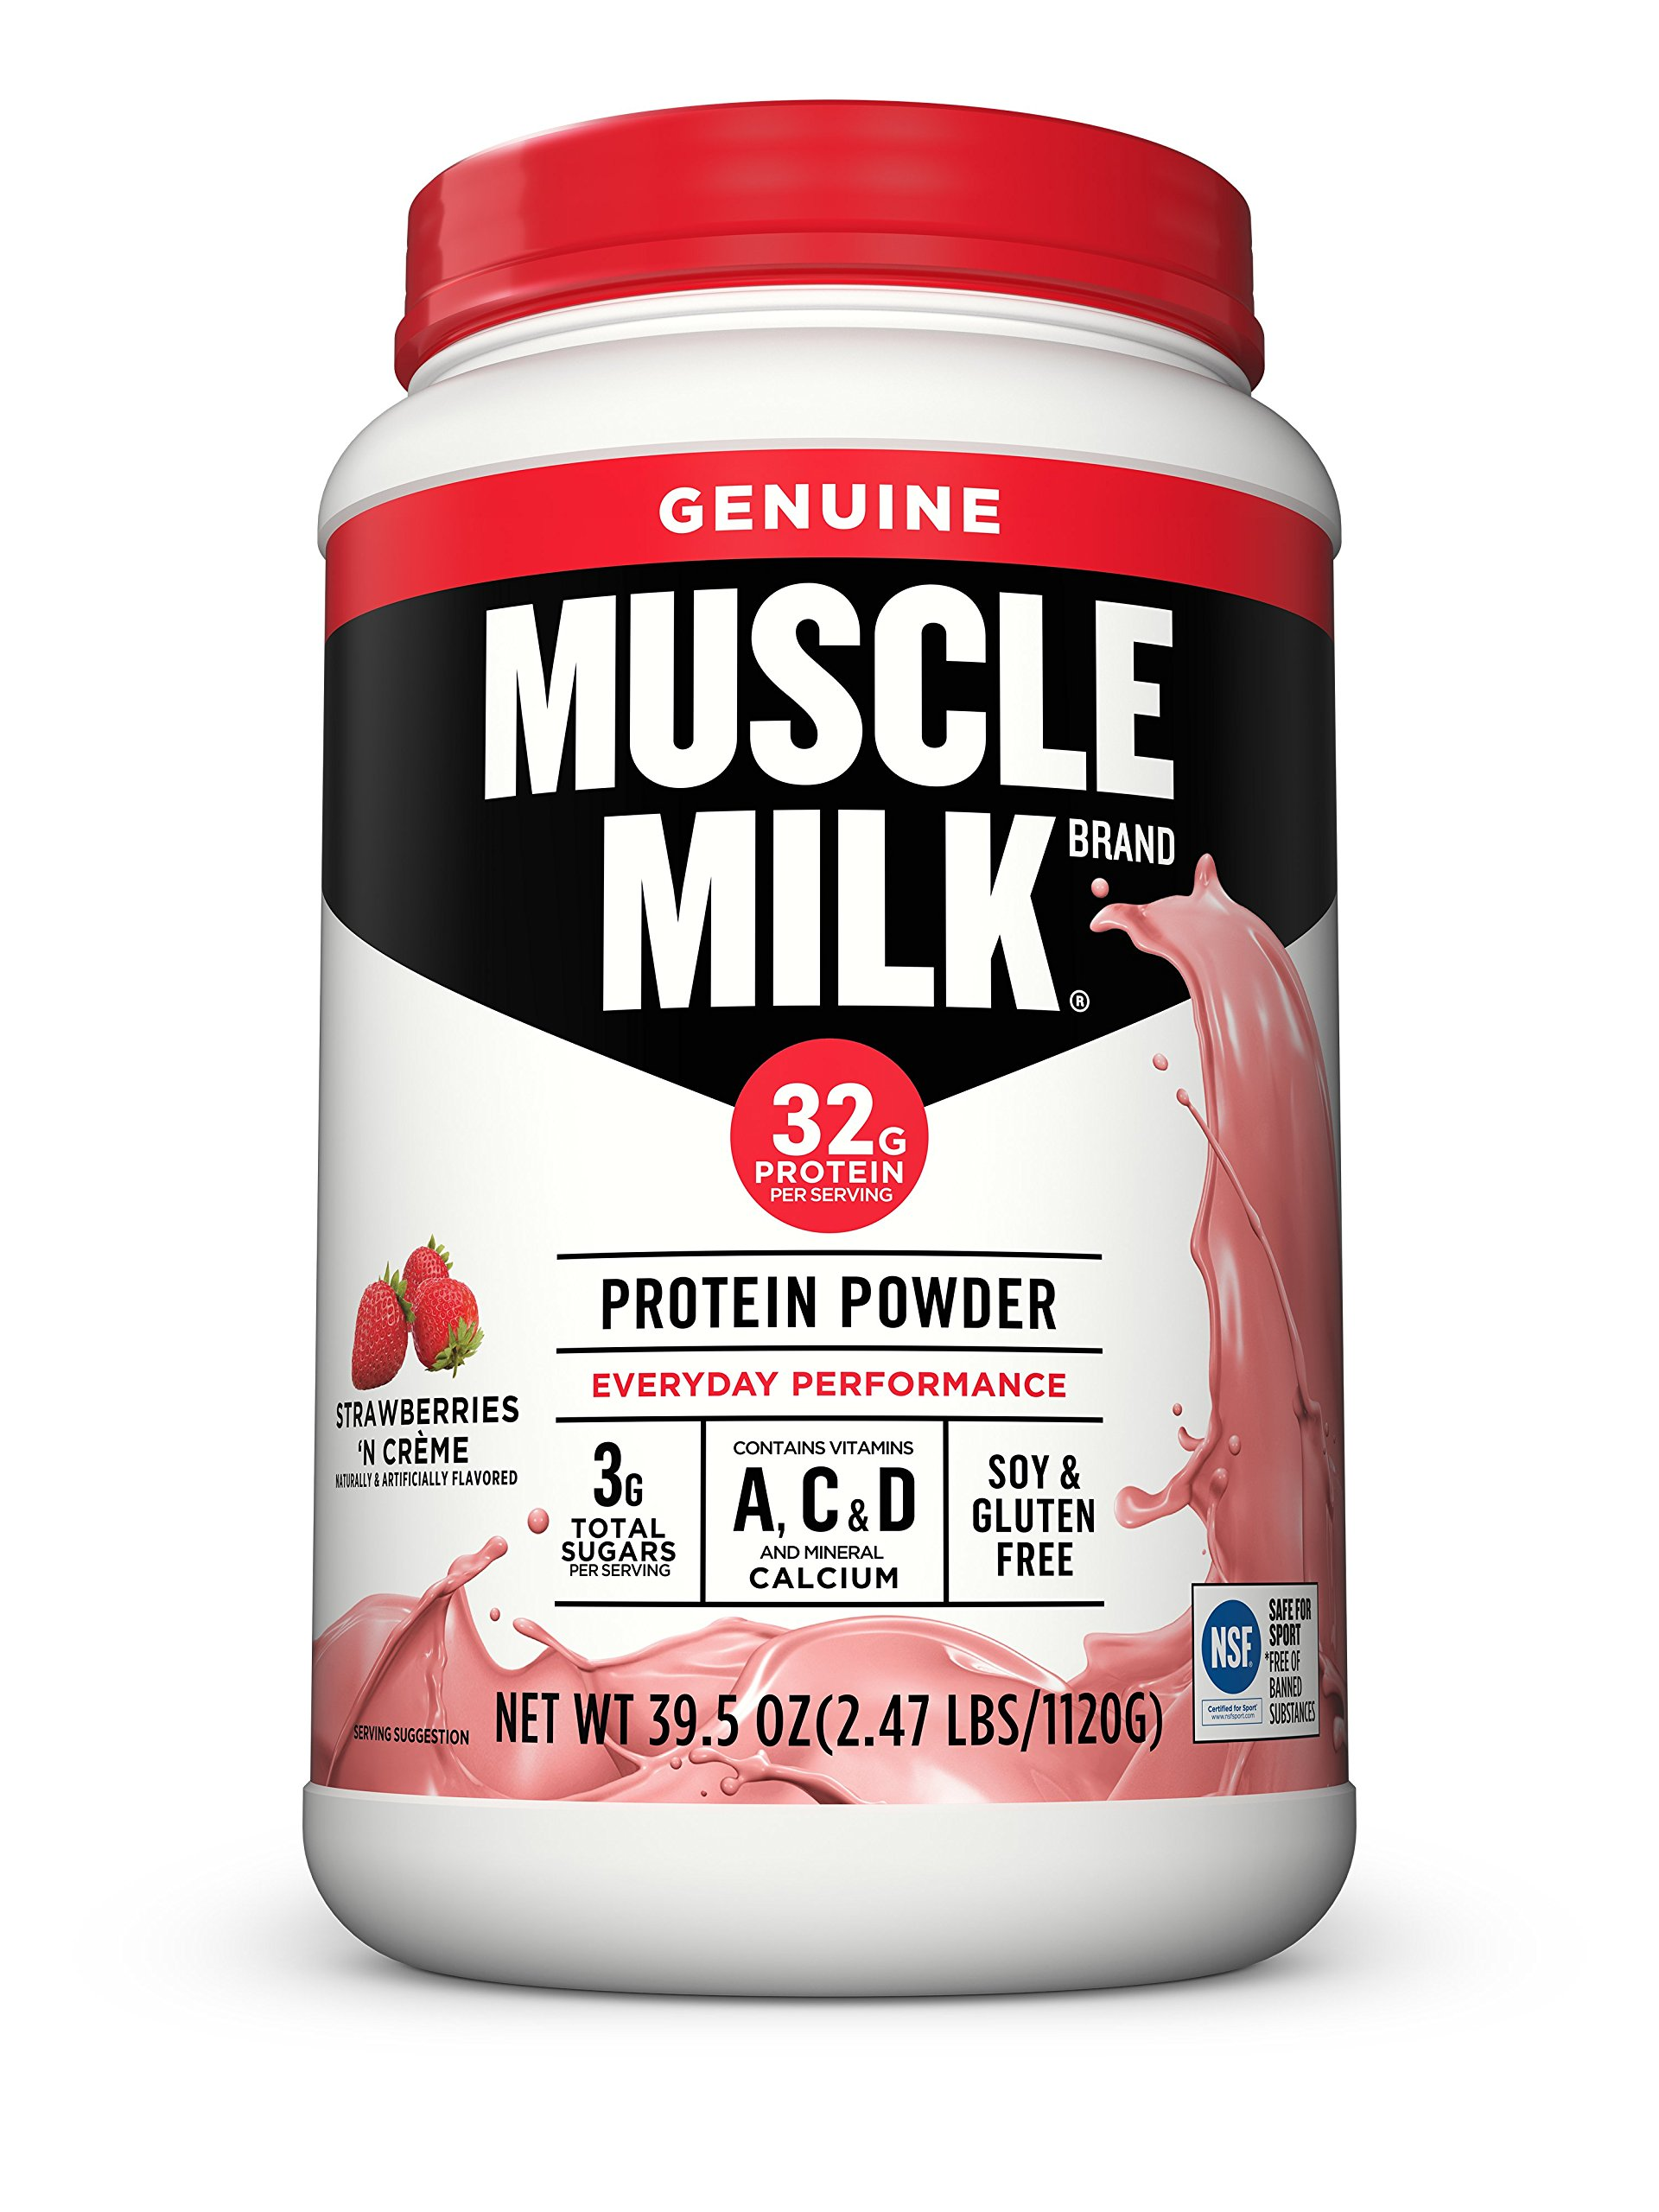 Muscle Milk Genuine Protein Powder, Strawberries 'N Crème, 32g Protein, 2.47 Pound by Cytosport